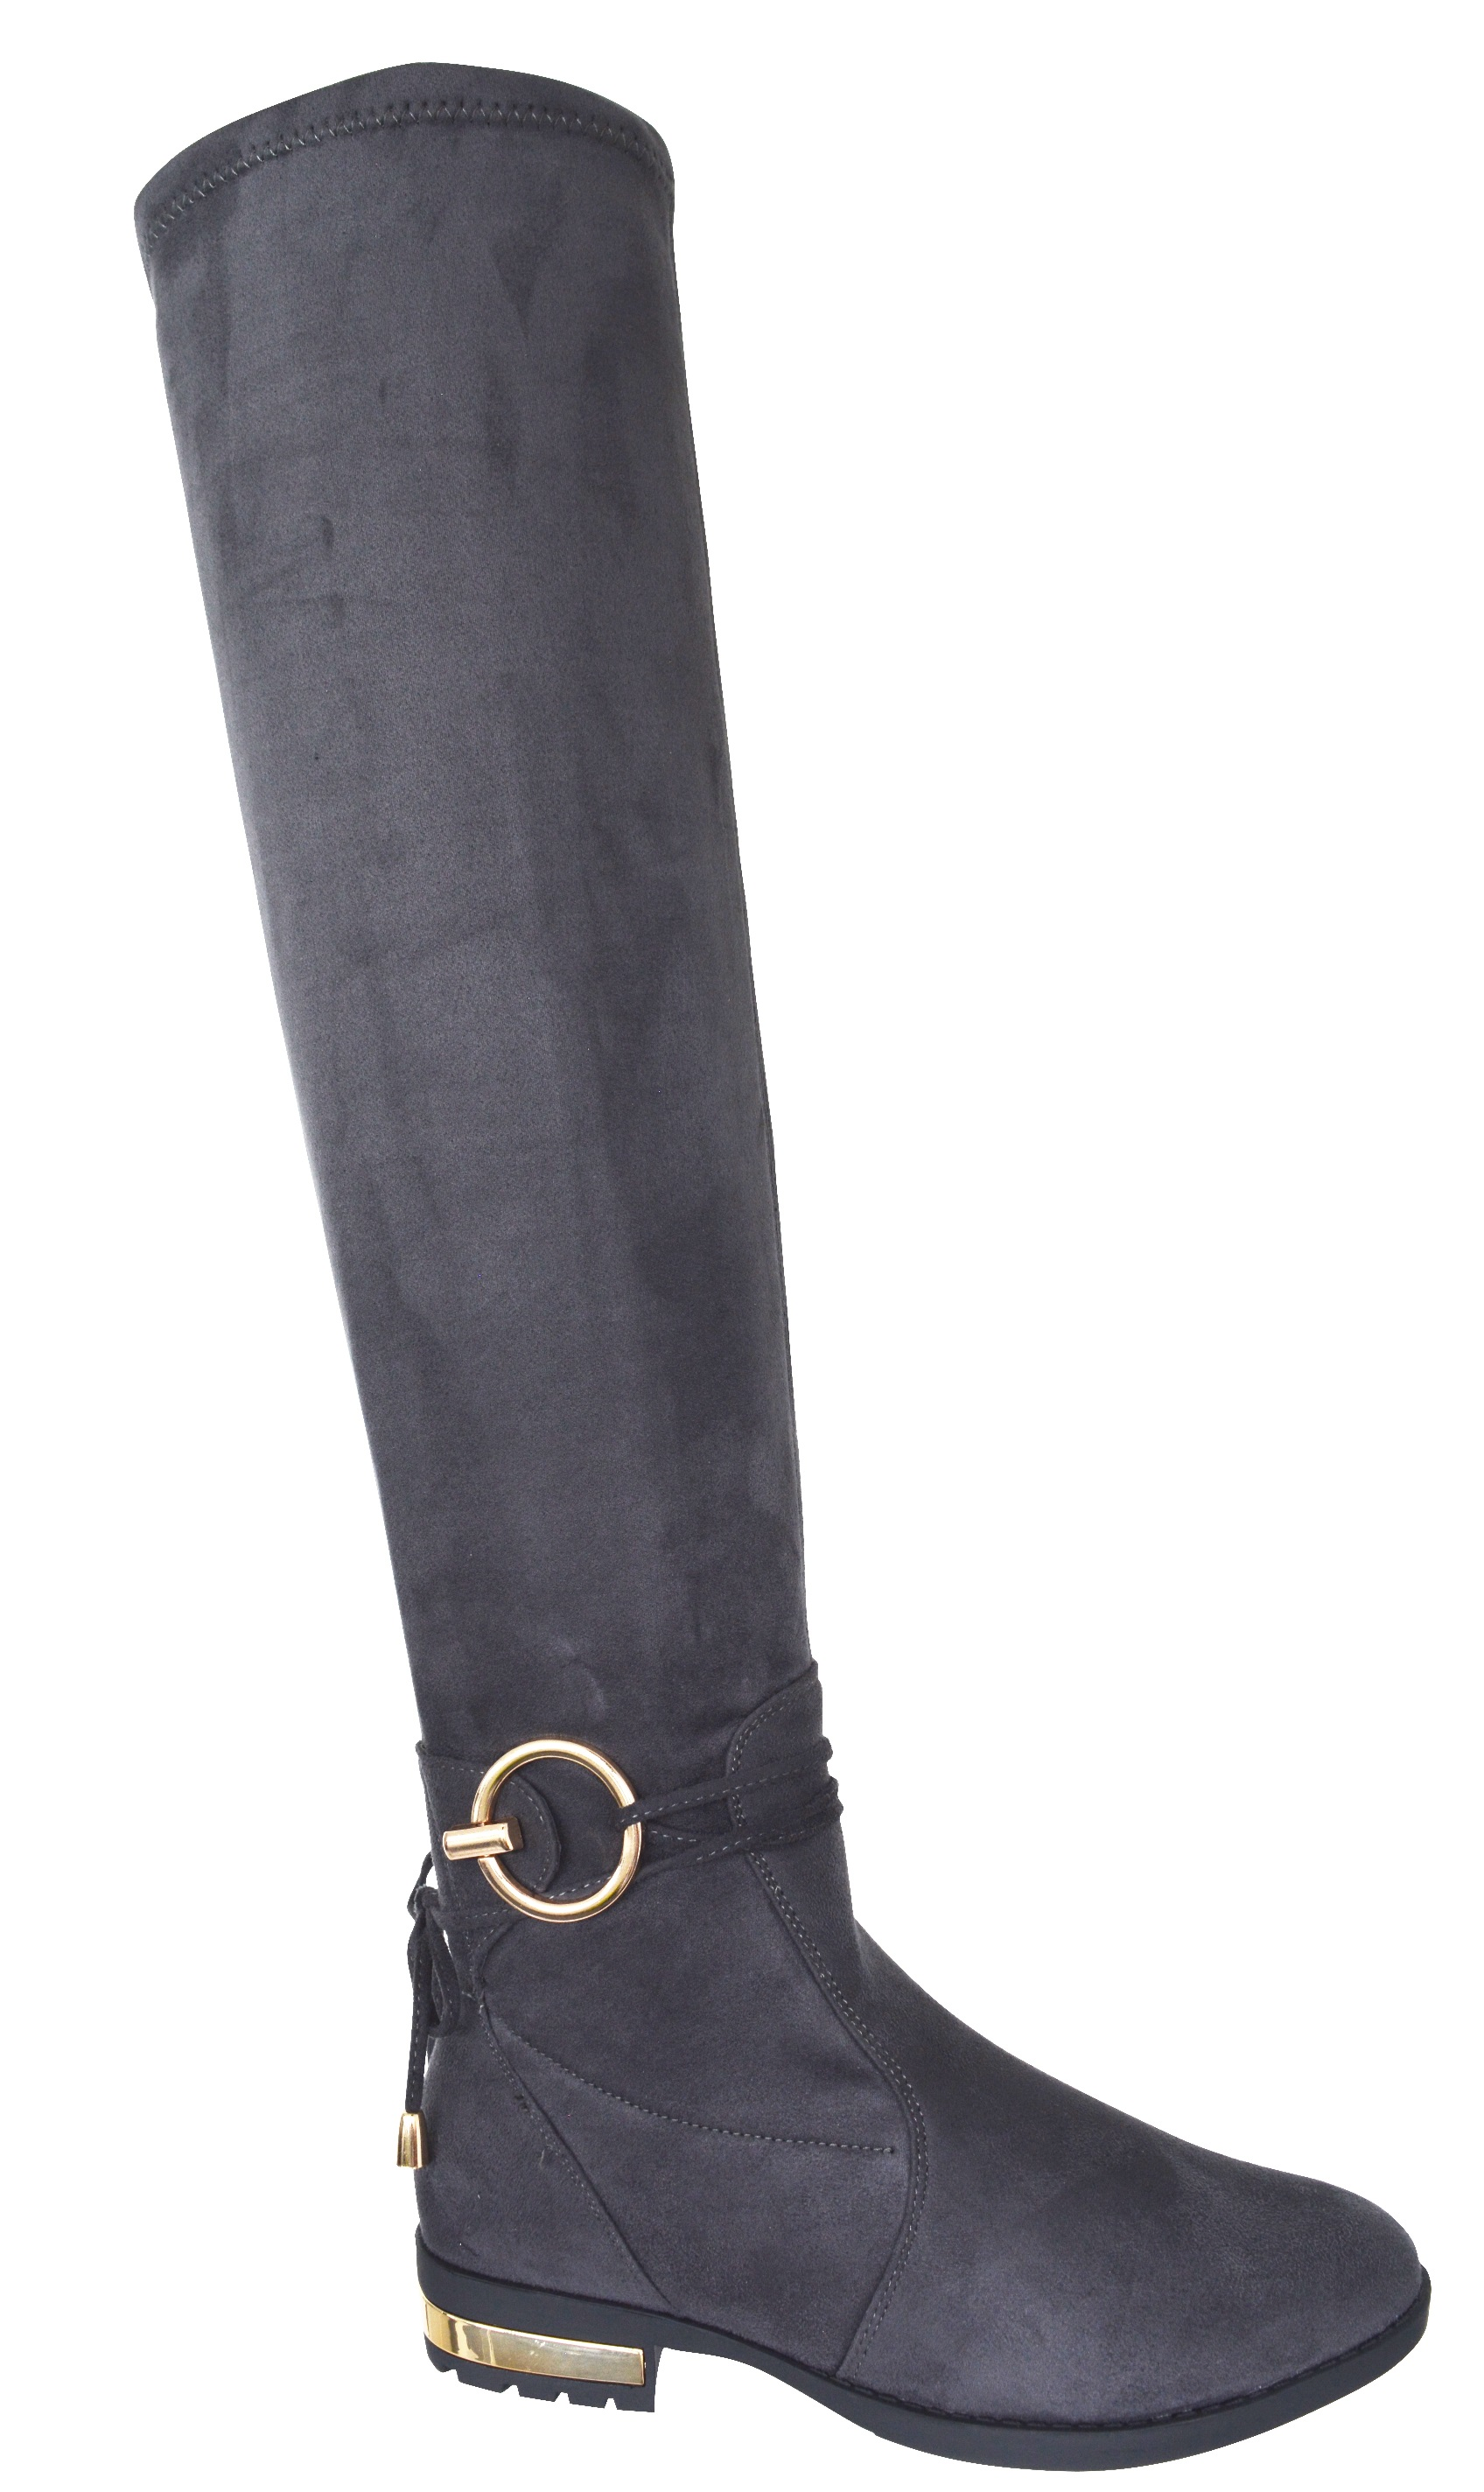 LADIES WOMENS OVER THE KNEE HIGH LOW GOLD HEEL BOOTS ...